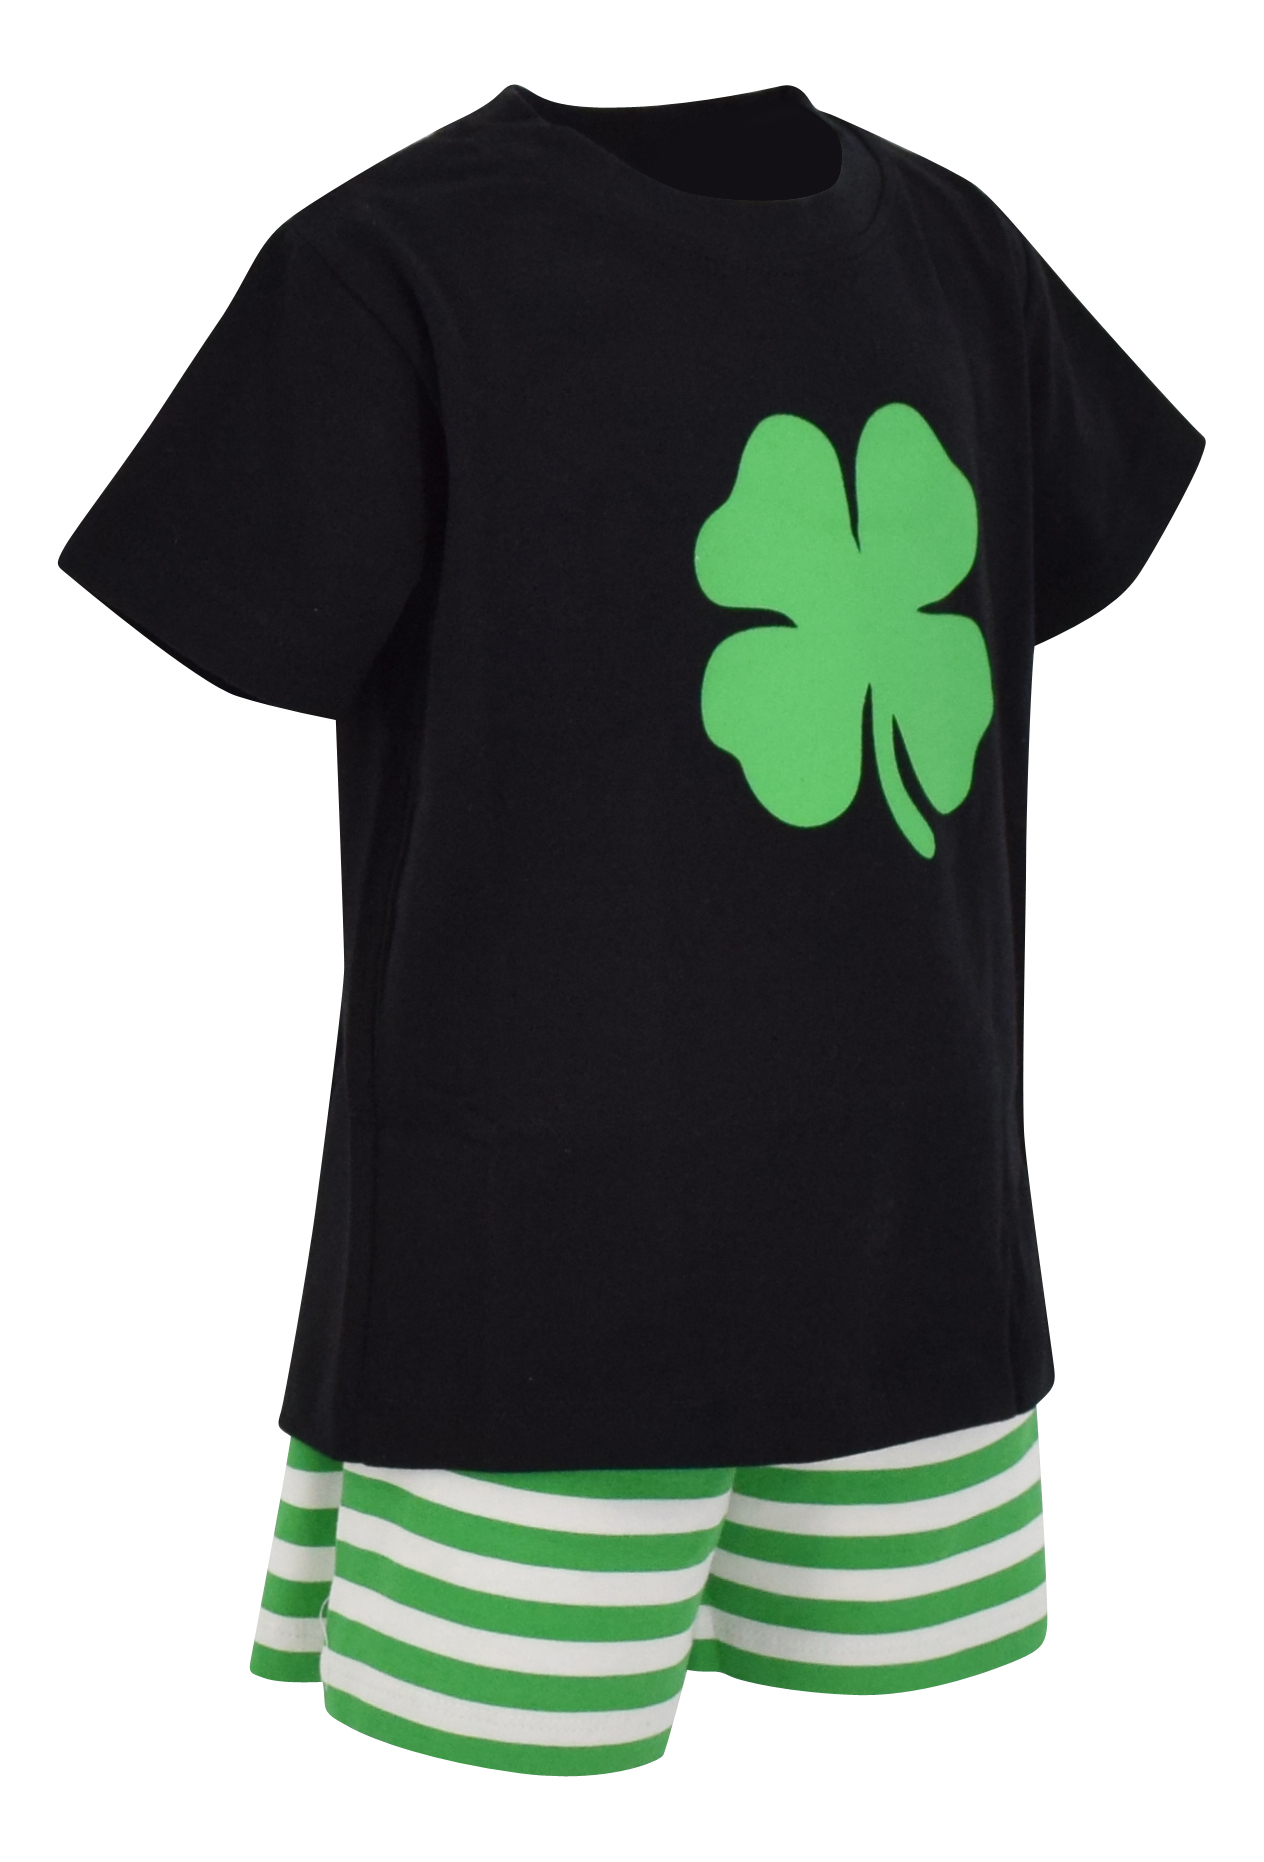 Boys-2-Piece-ST-Patricks-Day-Clover-Outfit-2t-3t-4t-5-6-7-8-Toddler-Kids-Clothes thumbnail 46